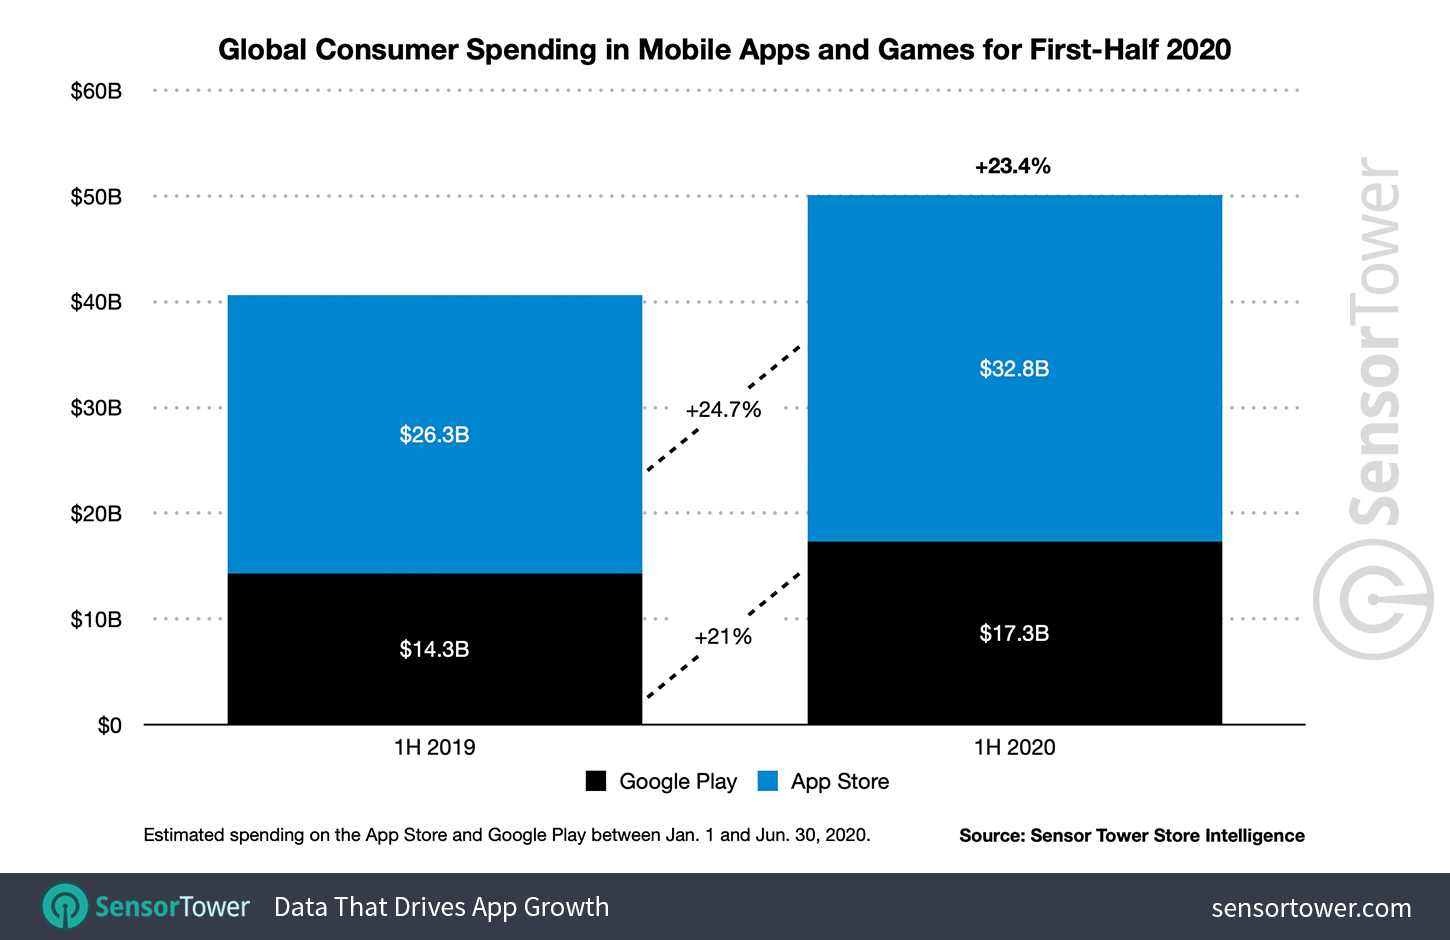 1H 2020 Mobile App Revenue